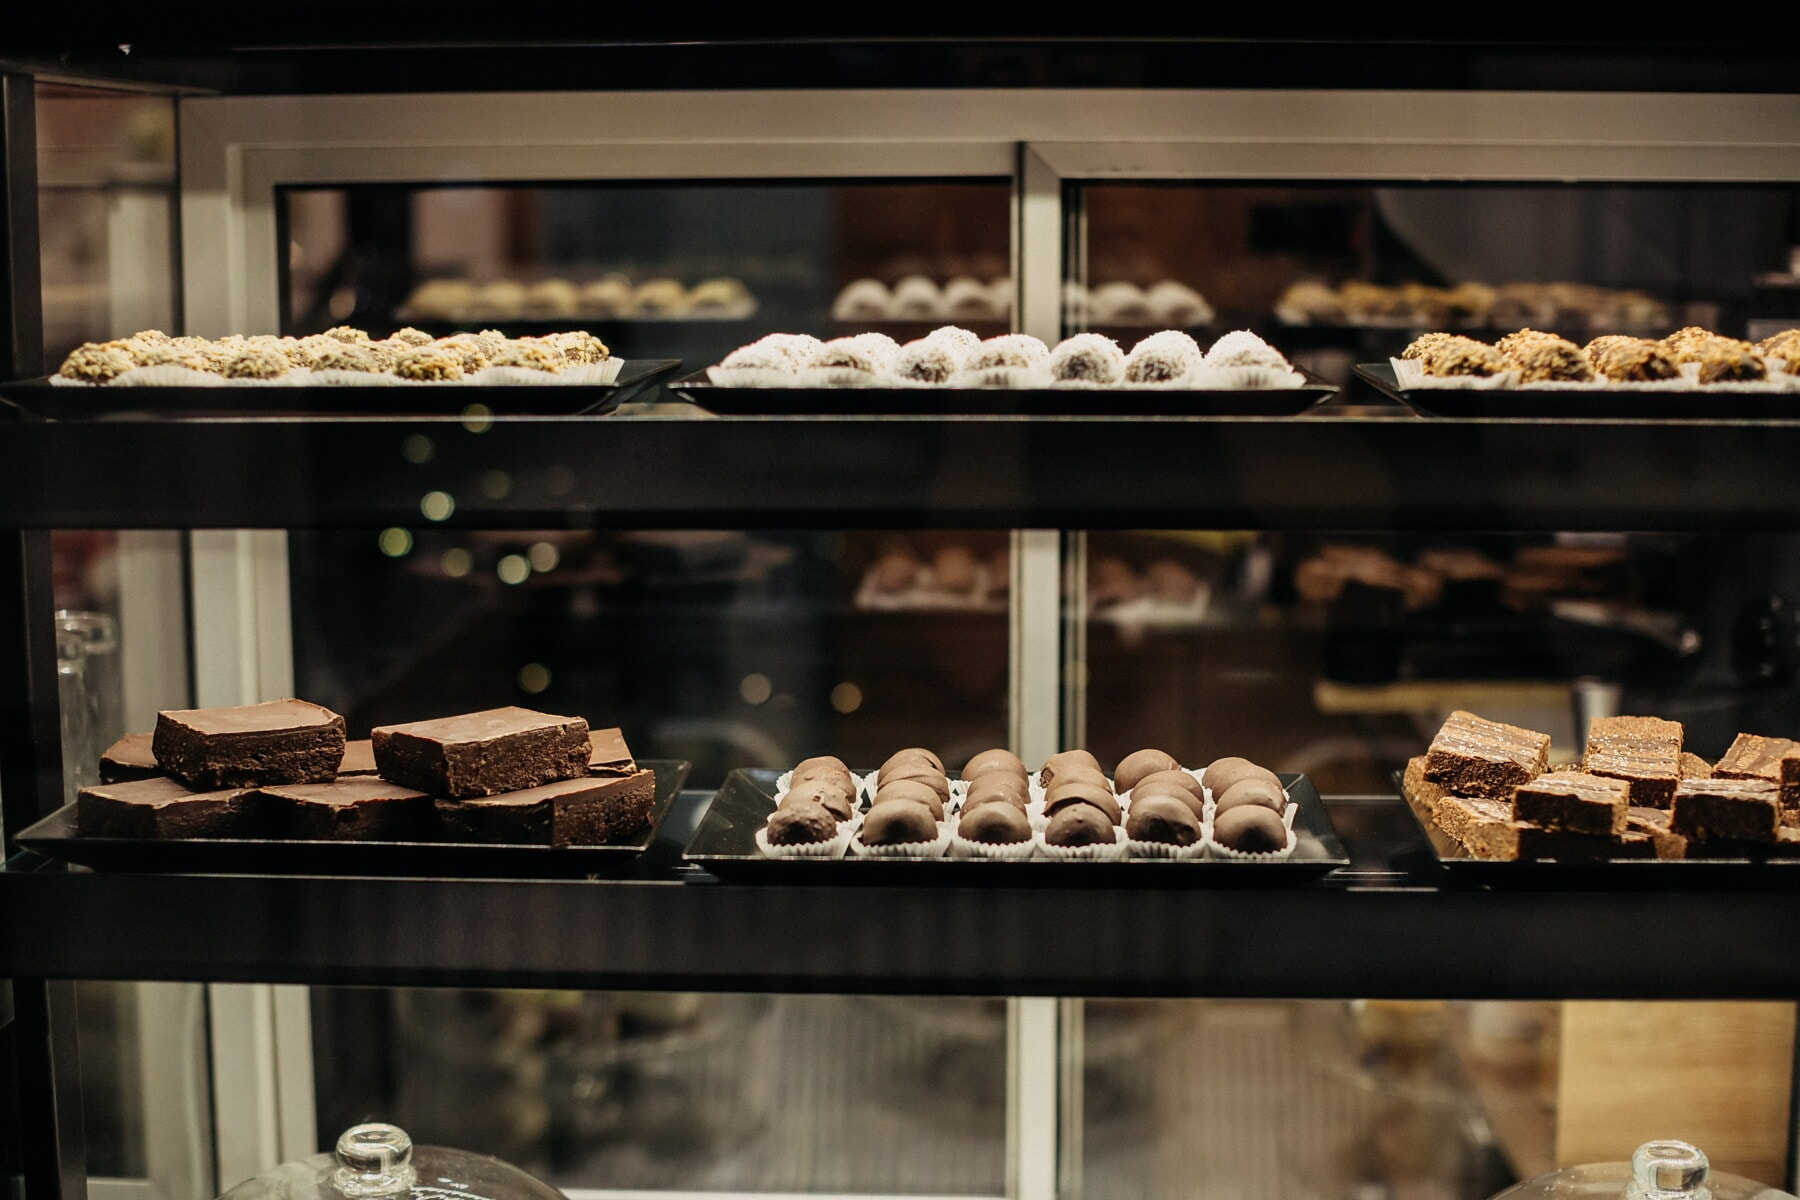 pâtisserie, biscuits, Atelier, plateau, assortiment, stock, doux, chocolat, alimentaire, magasin